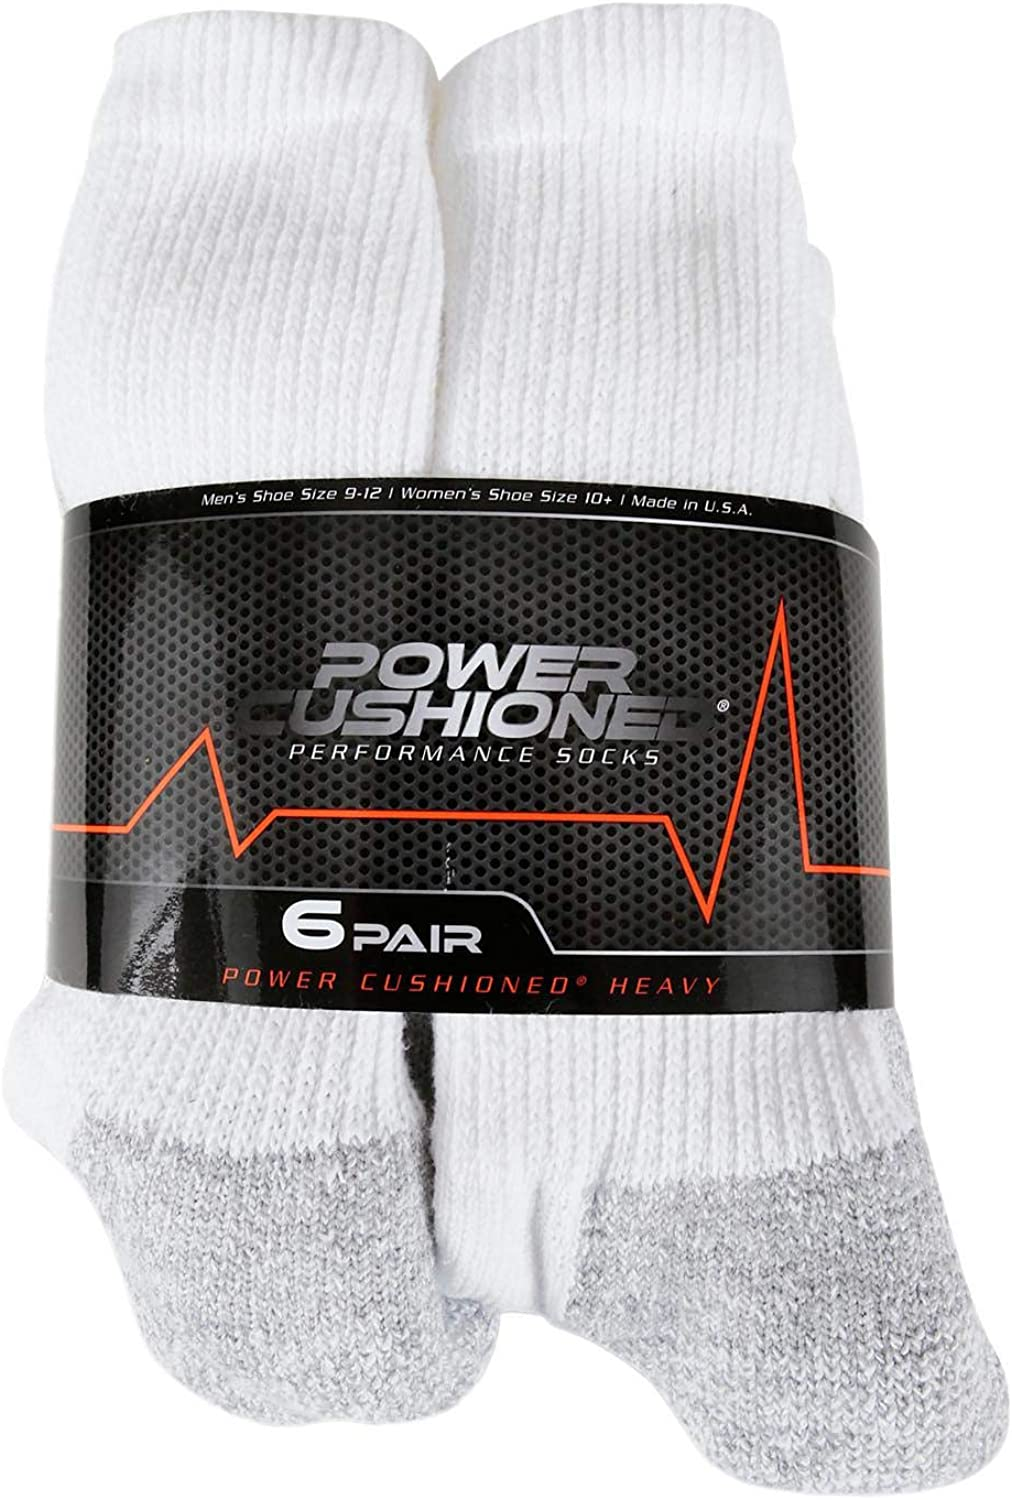 Power Cushioned Performance Crew Large 6 Pair Pack (White), LARGE (Men's shoe size 9-12) at  Men's Clothing store